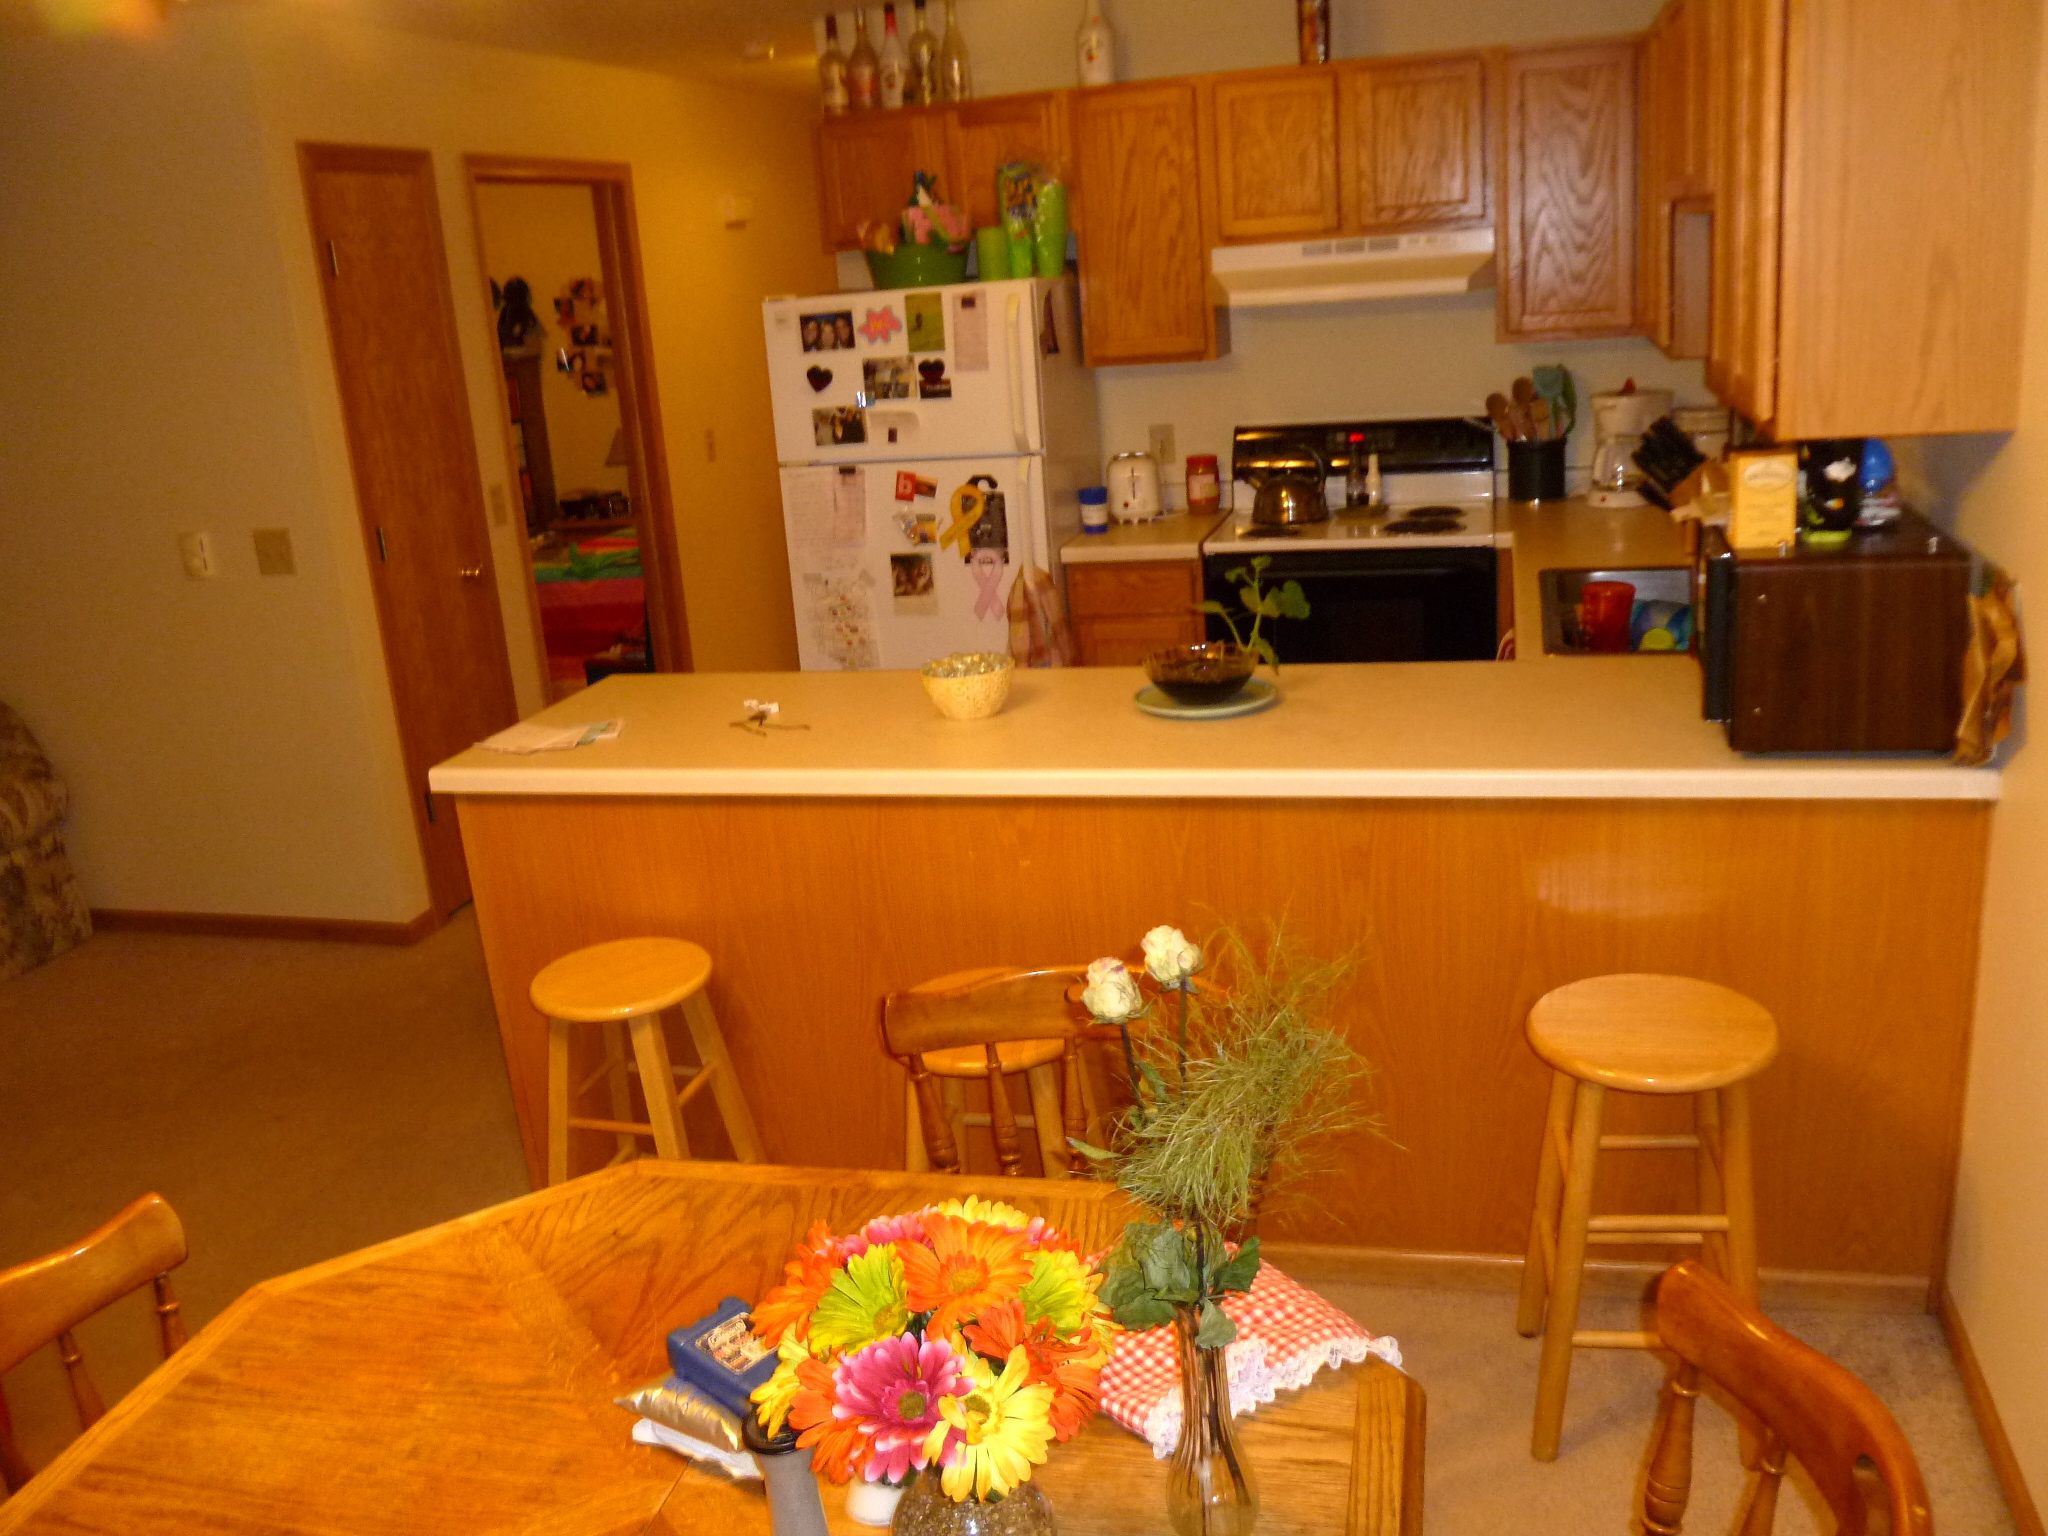 J k investments photo gallery 3 br split apartments - One bedroom apartments menomonie wi ...